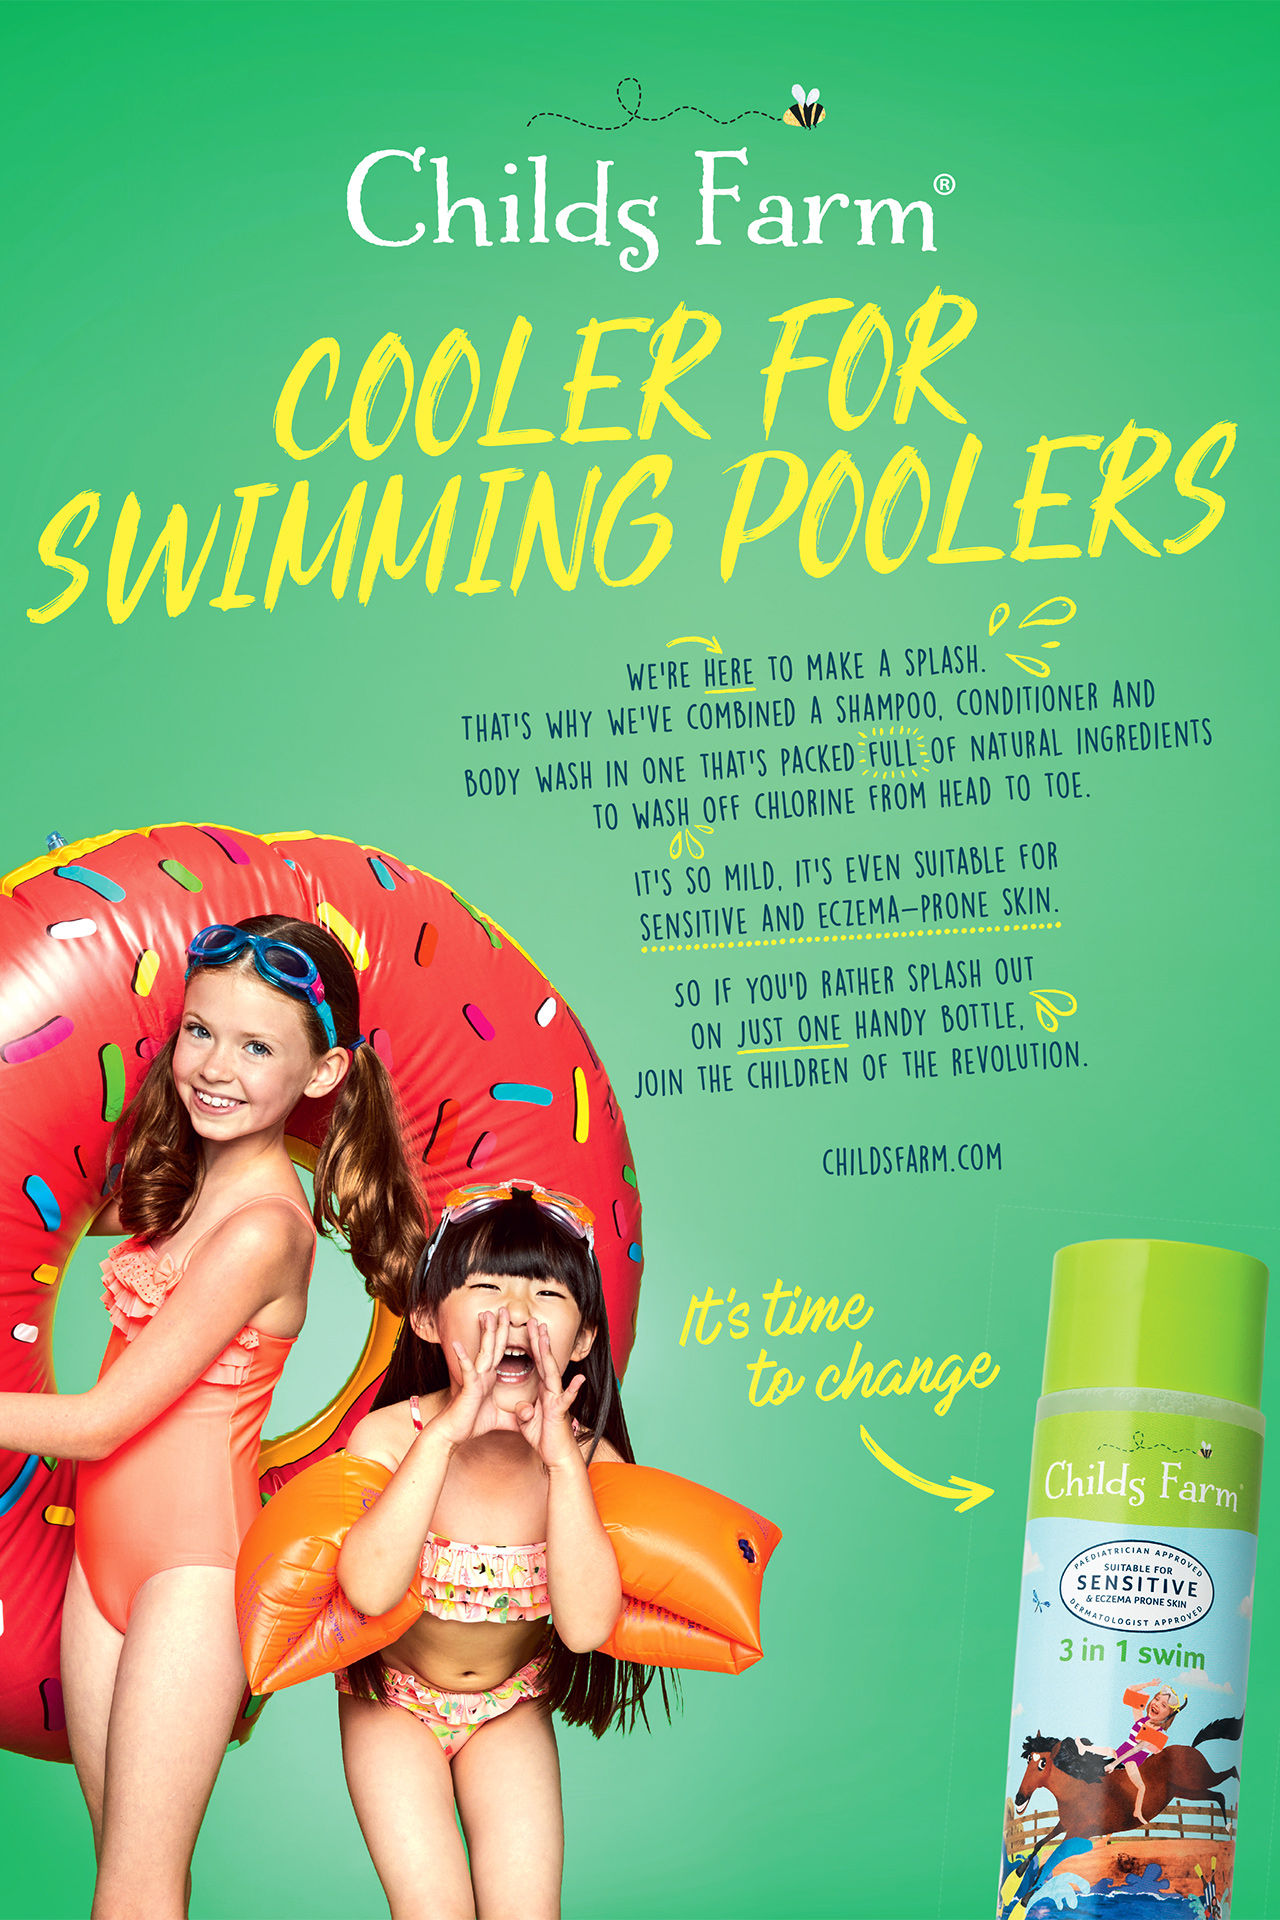 Childs Farm  Advert SWIMMING POOLERS Emma Tunbridge